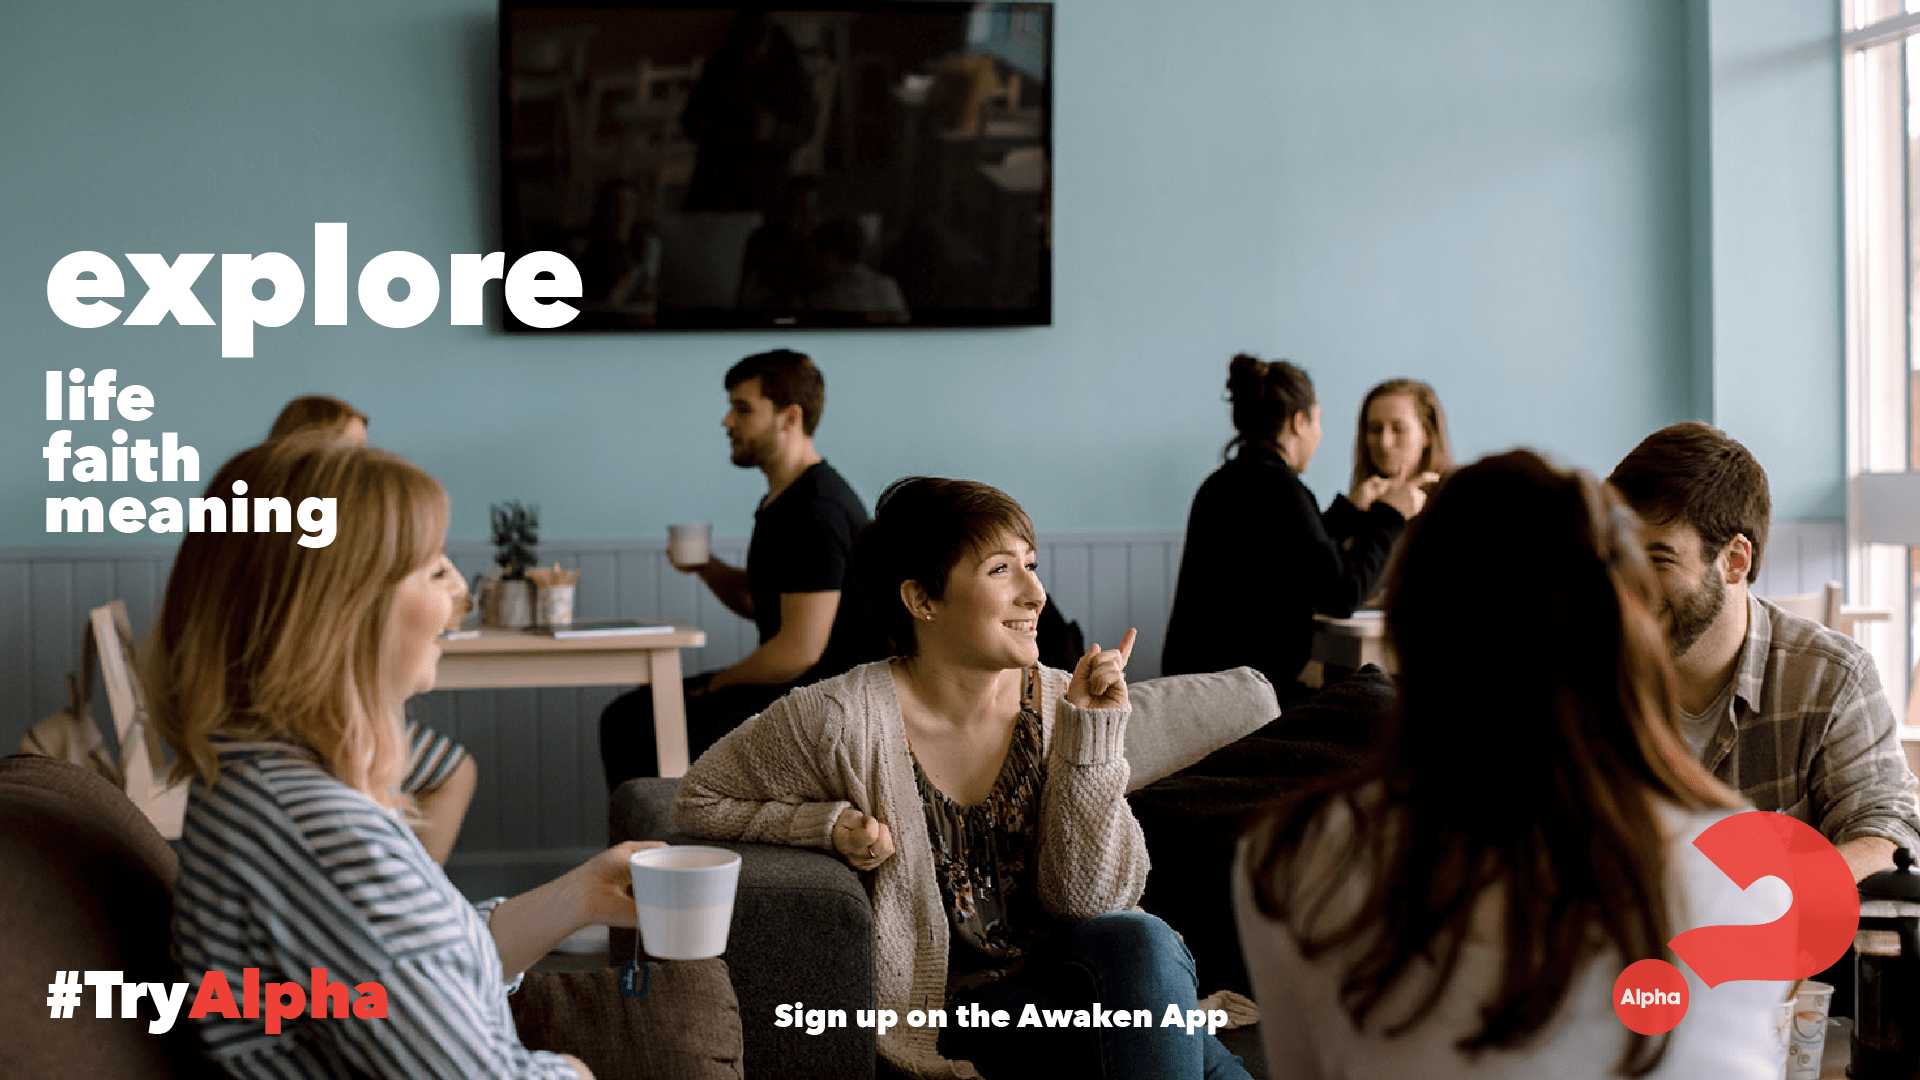 Alpha course image with people having coffee and chatting